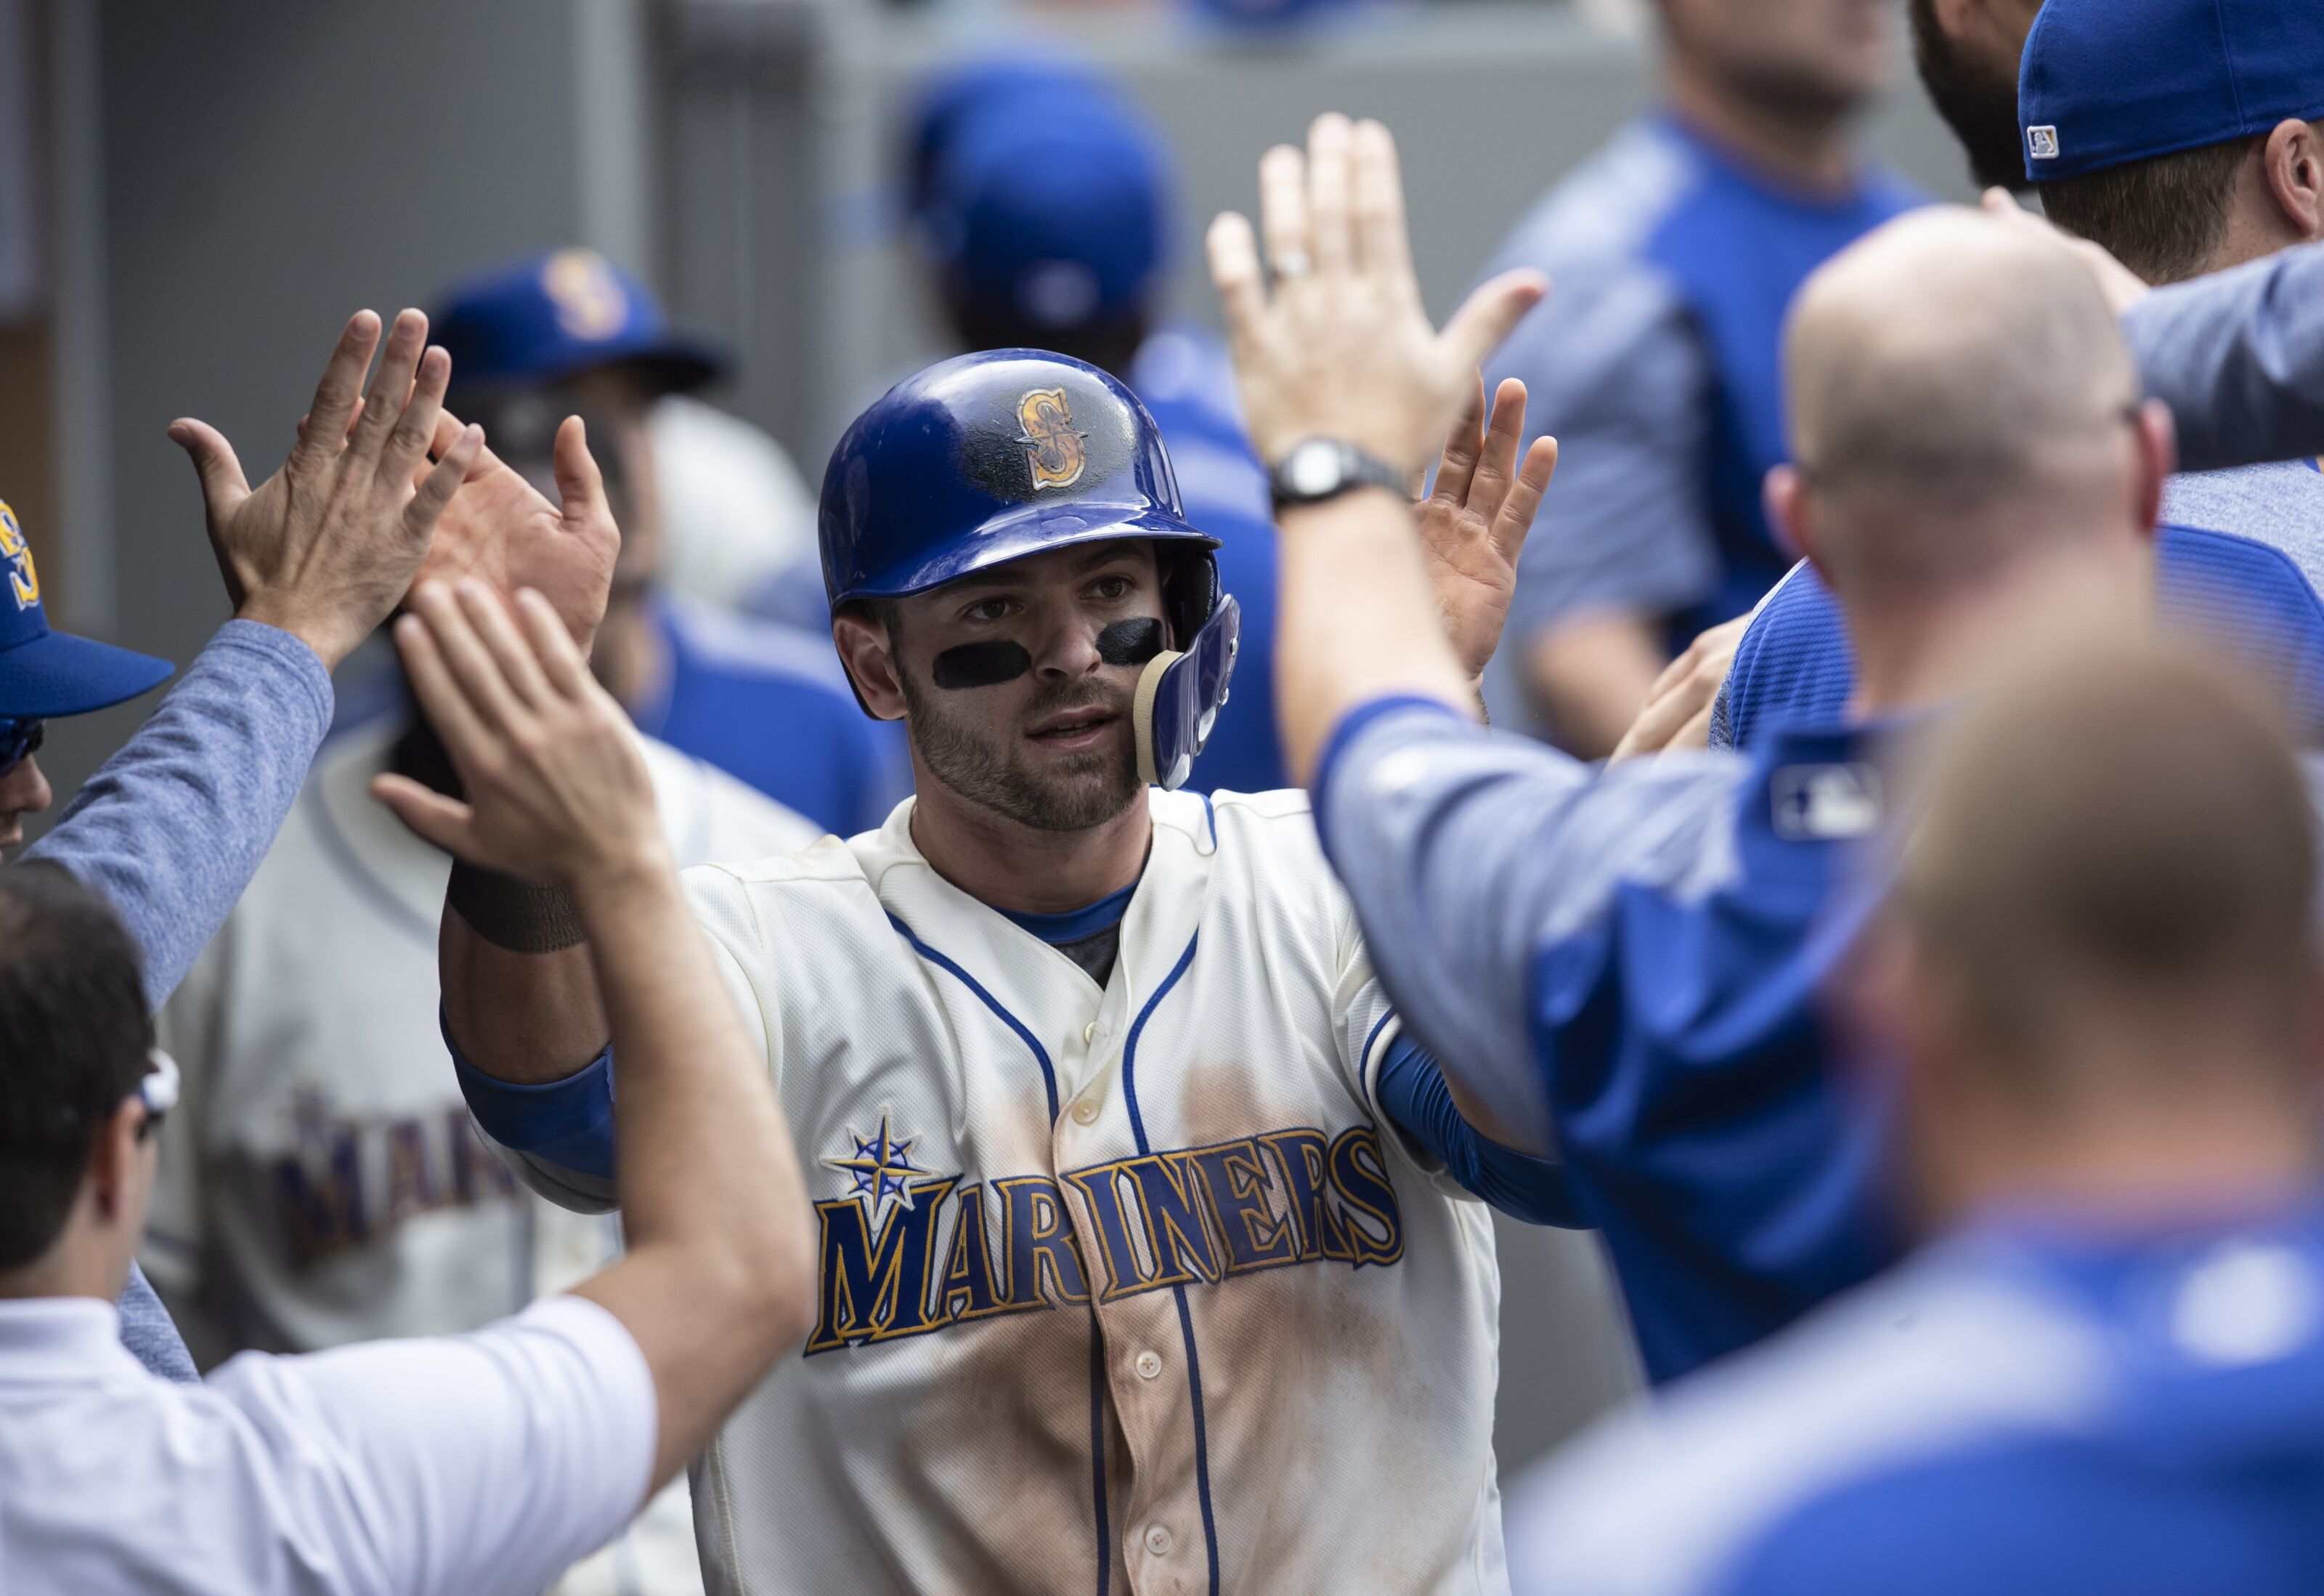 """The Seattle Mariners """"Re-Imagining"""" Might Just Work"""